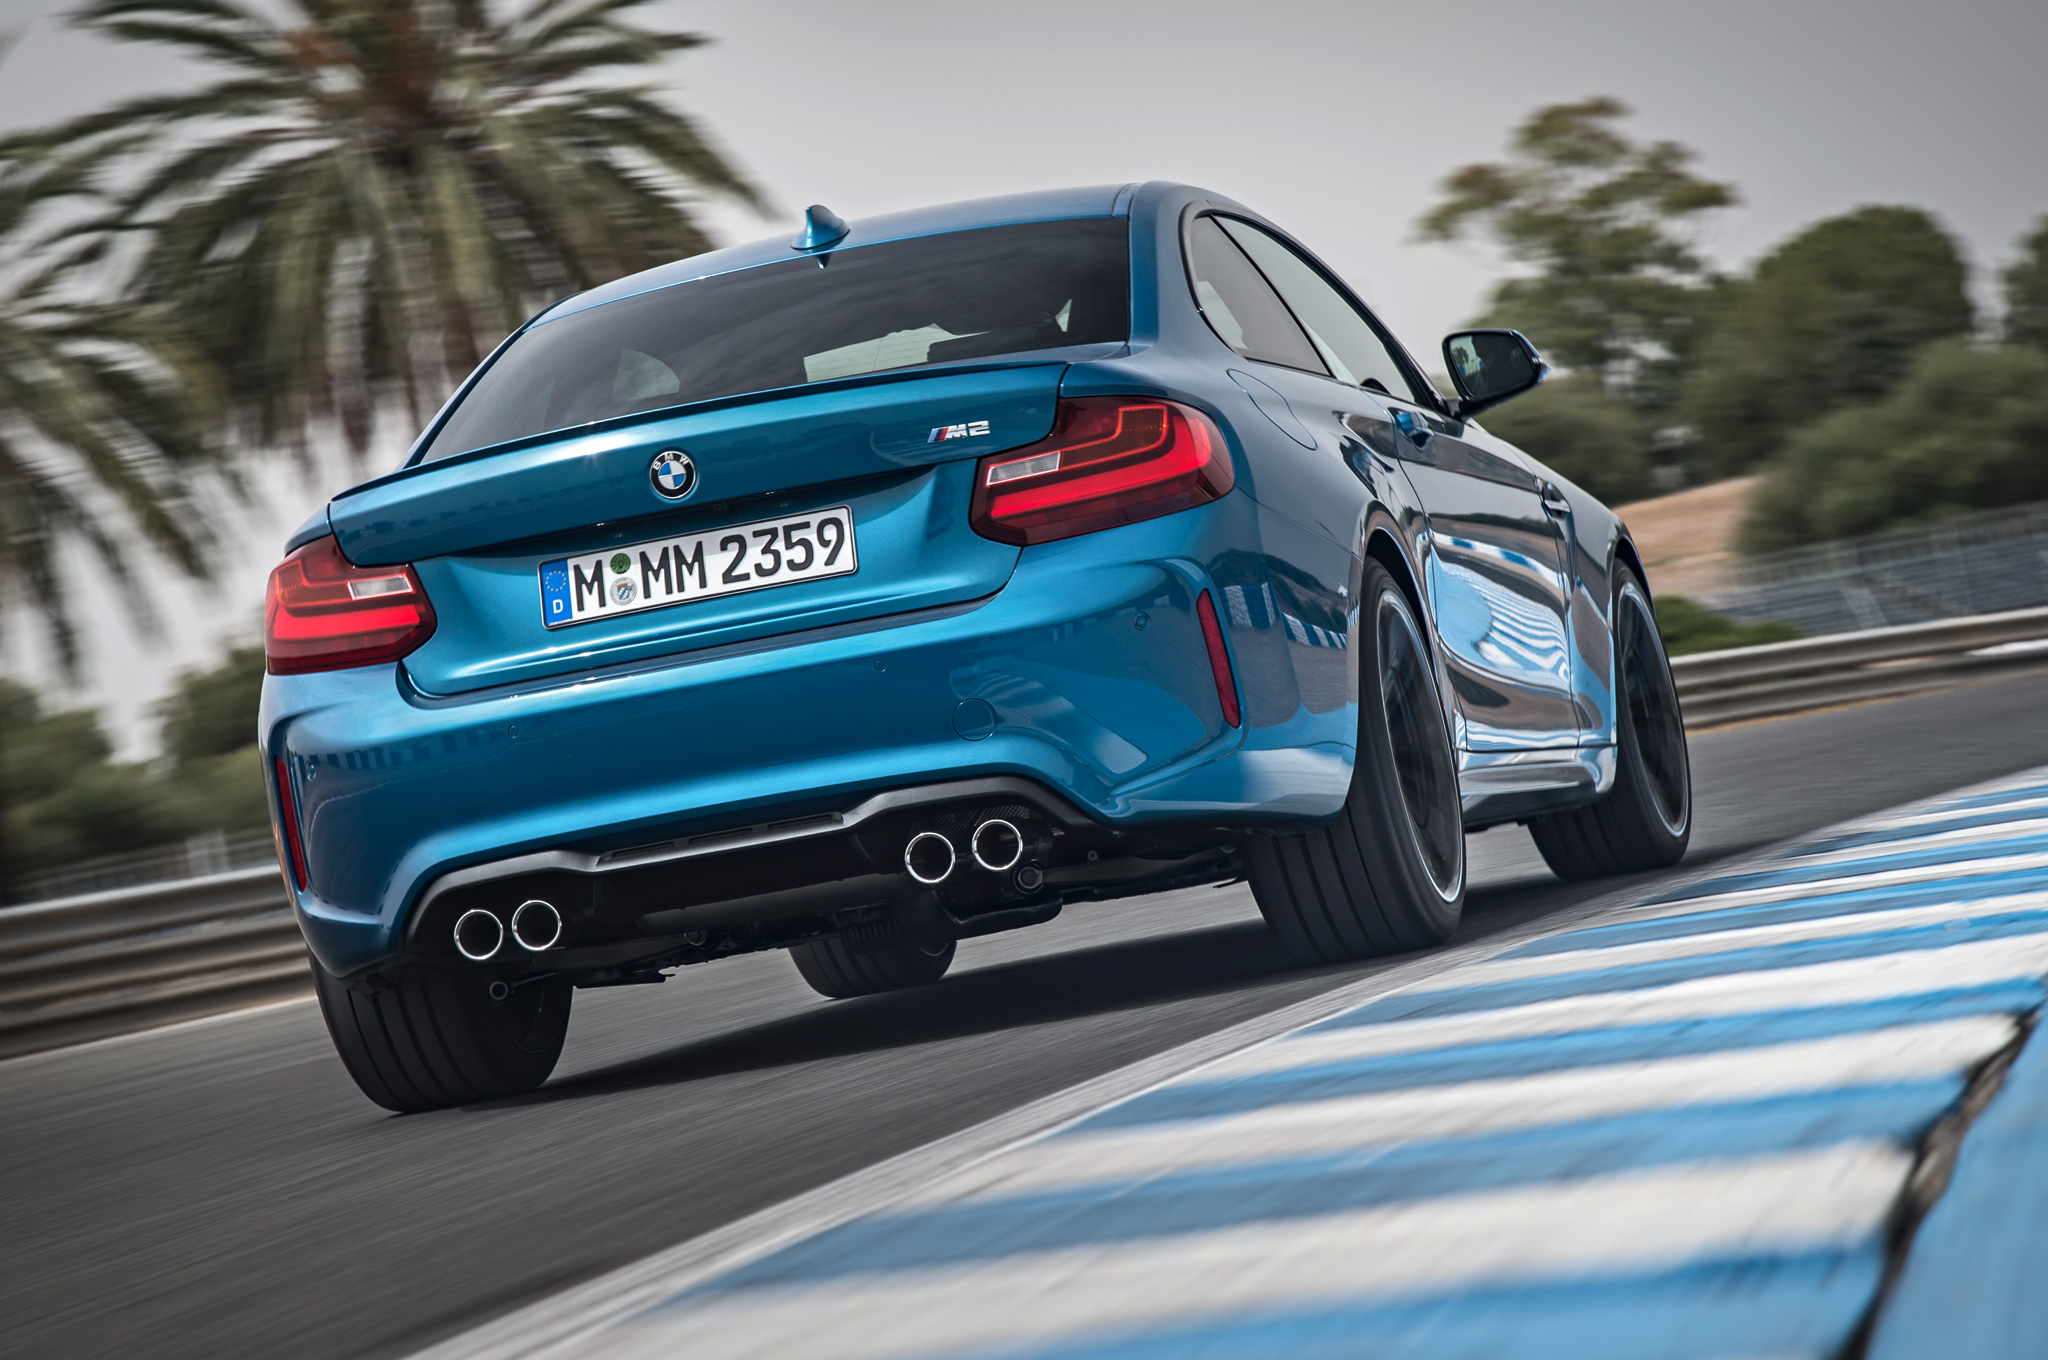 2016 BMW M2 Coupe Best HD Wallpapers   Car Wallpapers HQ 2048x1360